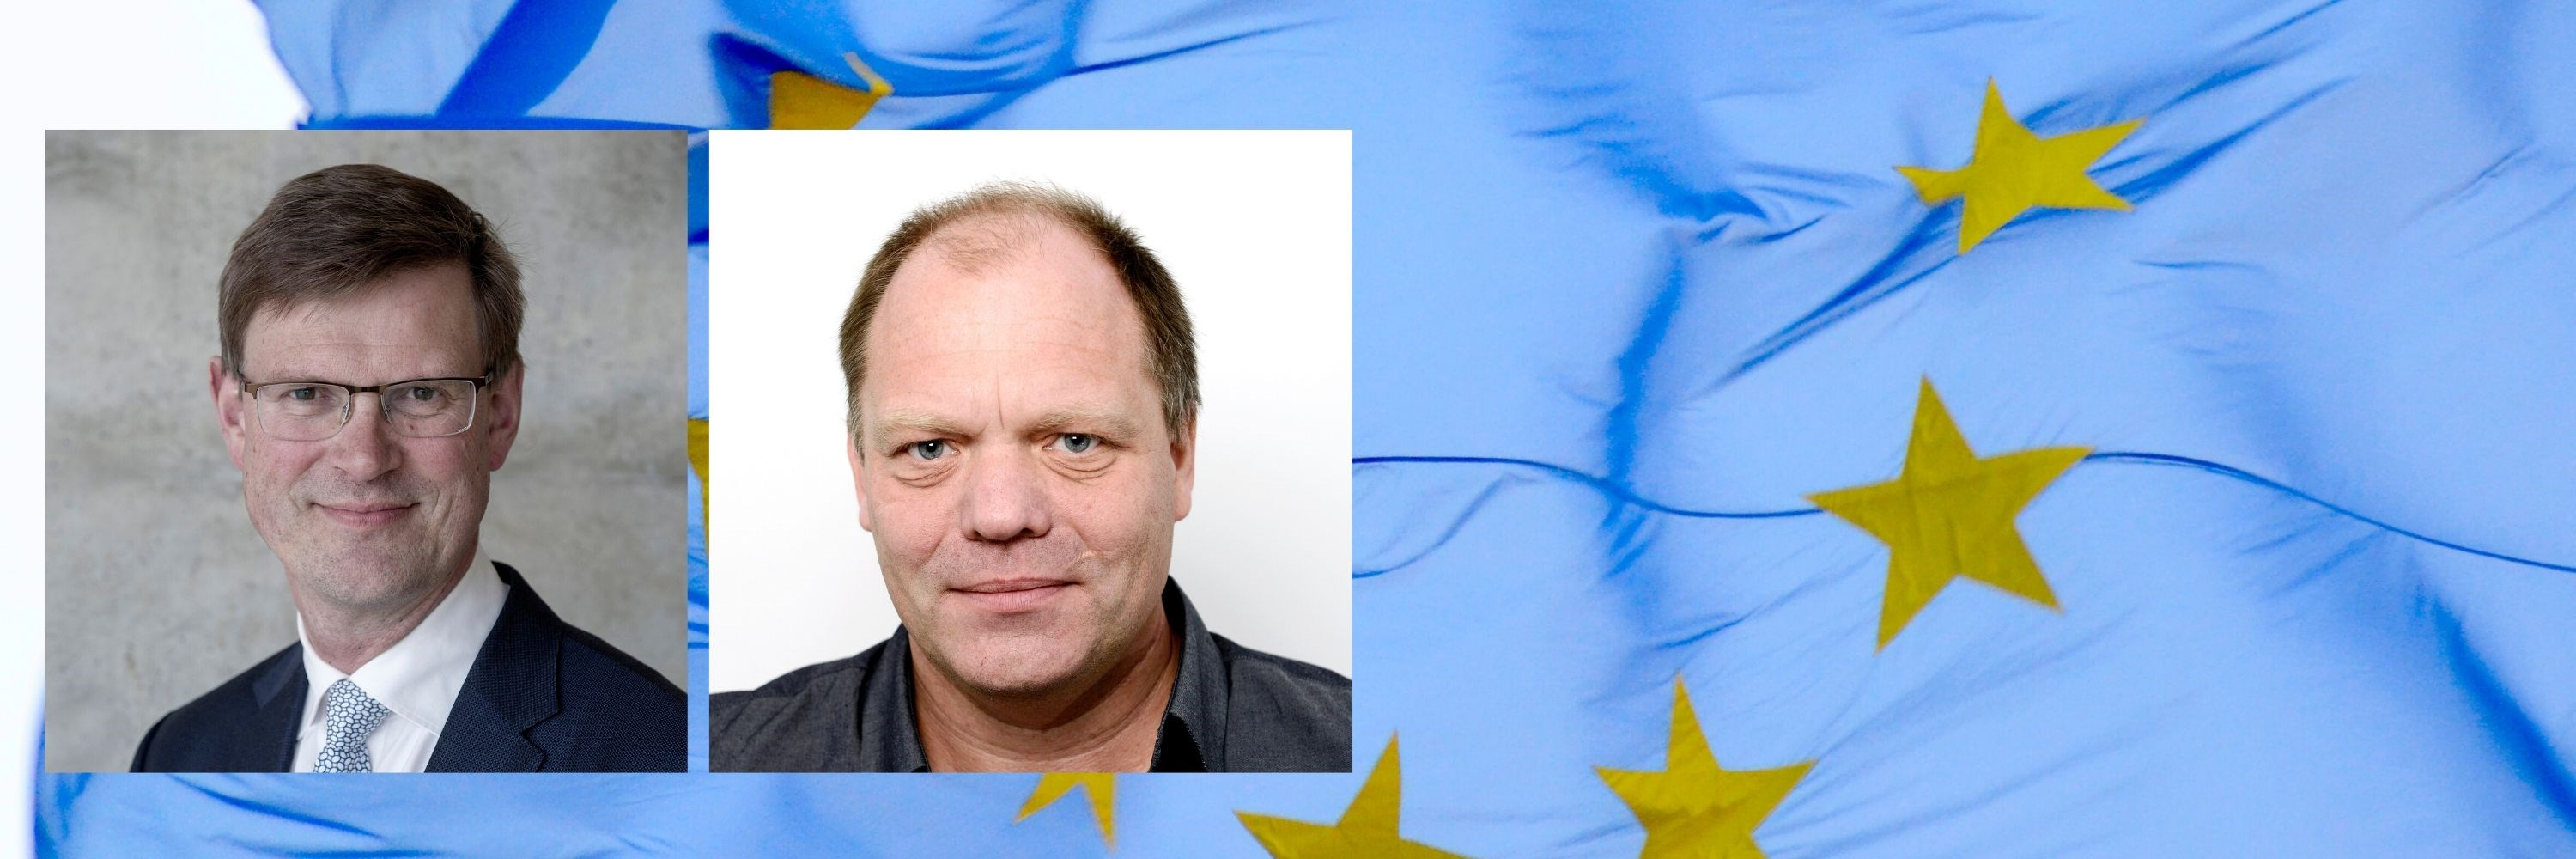 Alexander W. Cappelen and Aksel Mjøs are among the members of the reference groups for the EU's new research and innovation programme Horizon Europe.